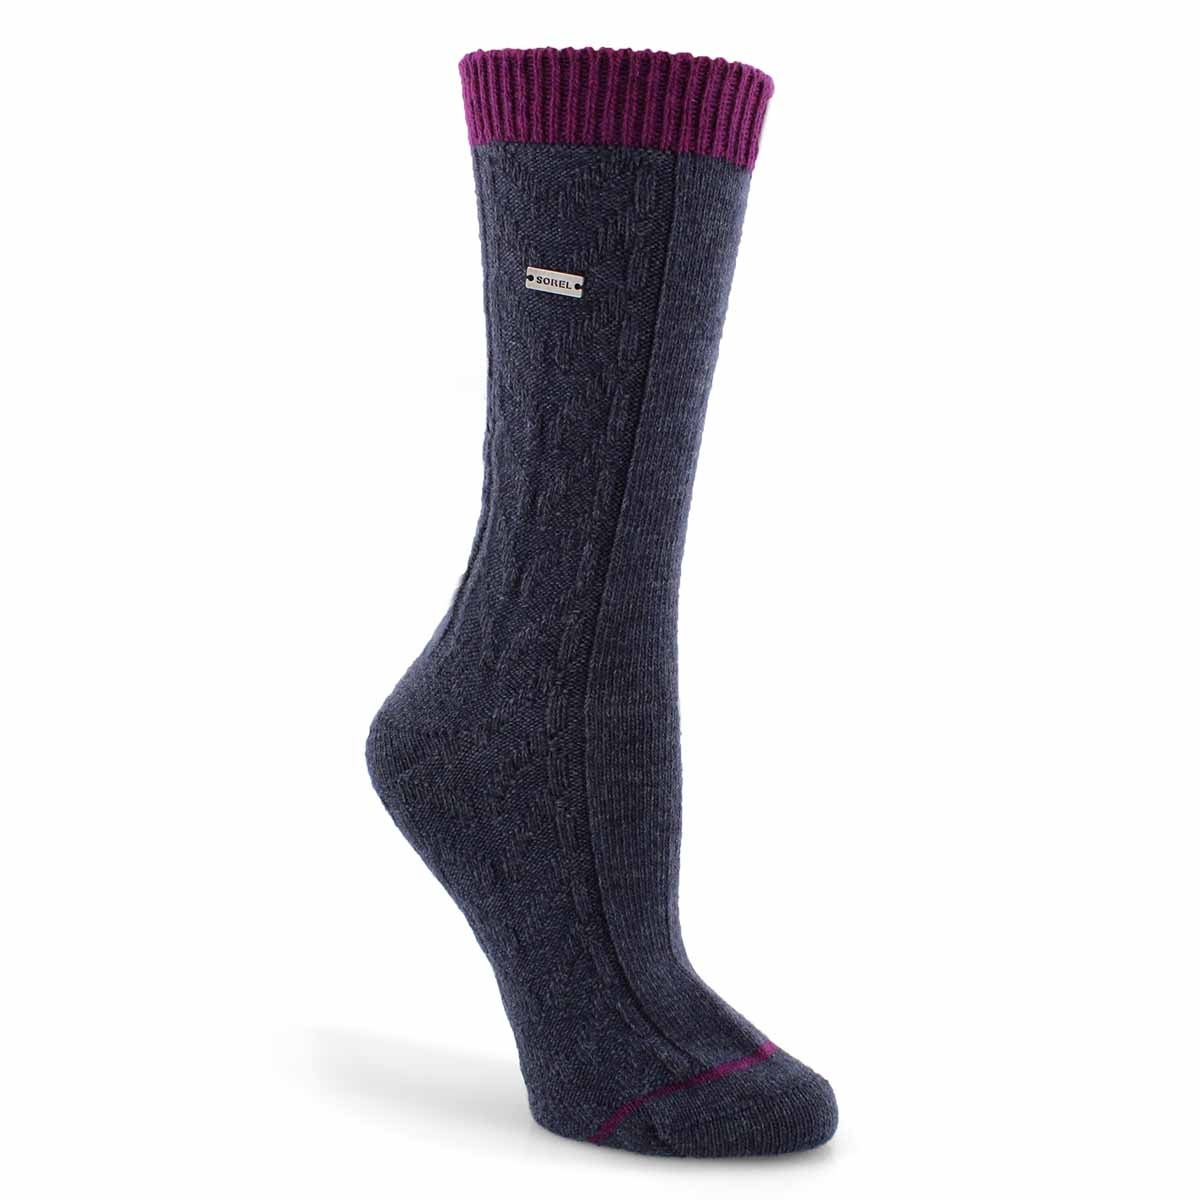 Lds Novelty Cable nvy/iris tall sock